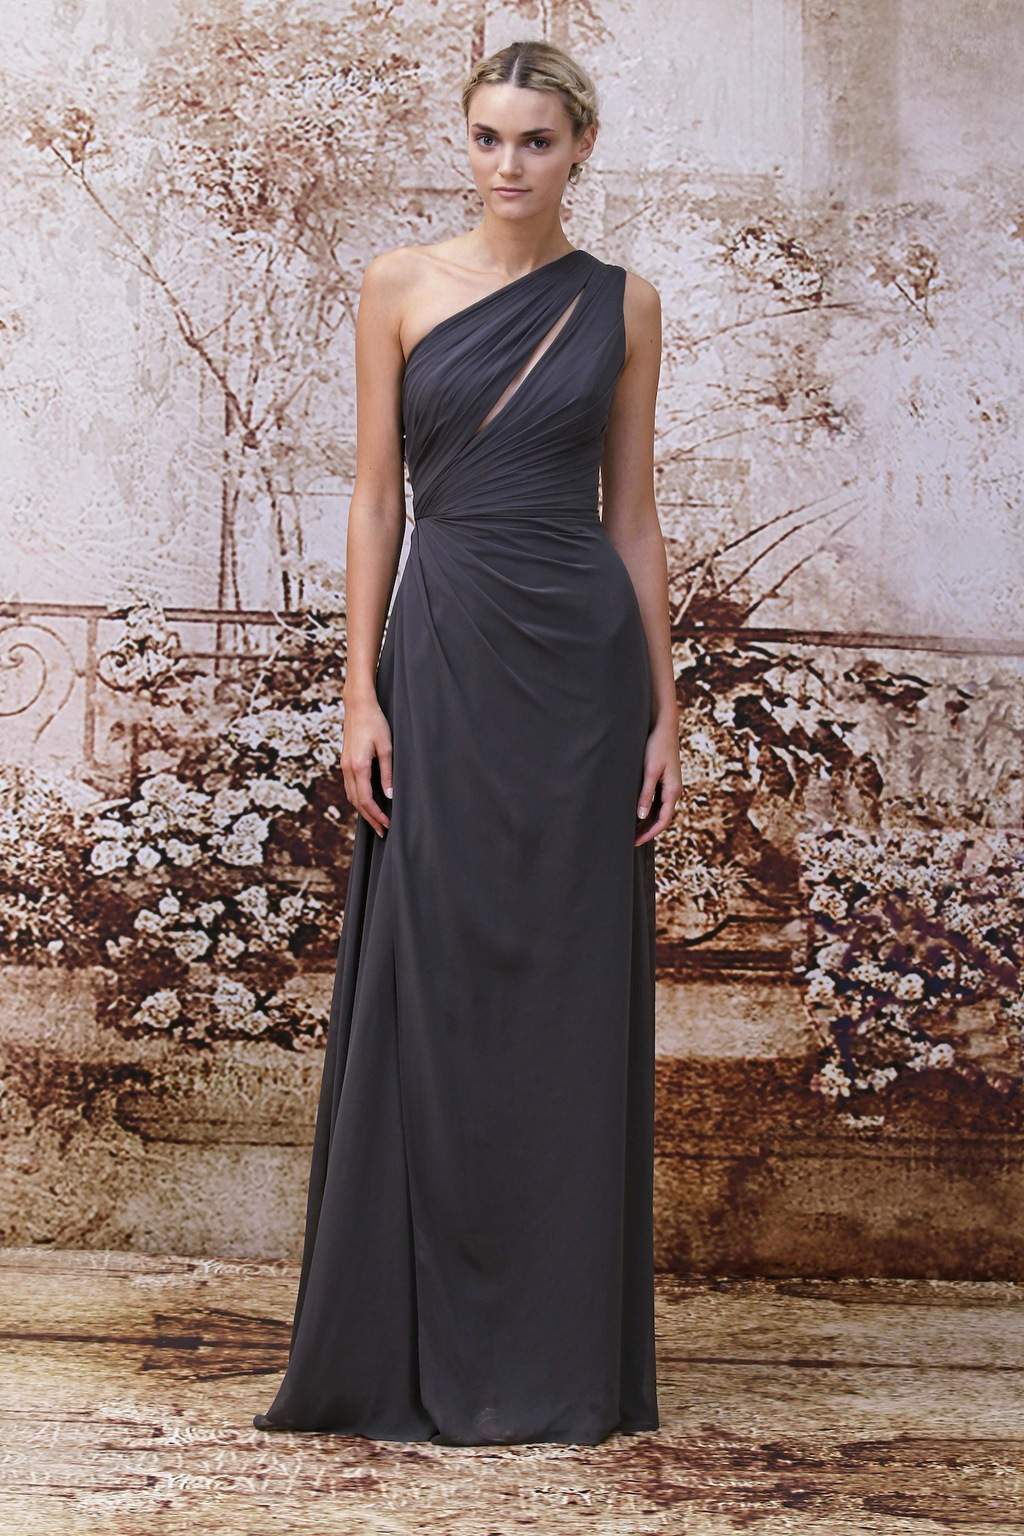 Slate_bridesmaids_dress_from_monique_lhuillier.full